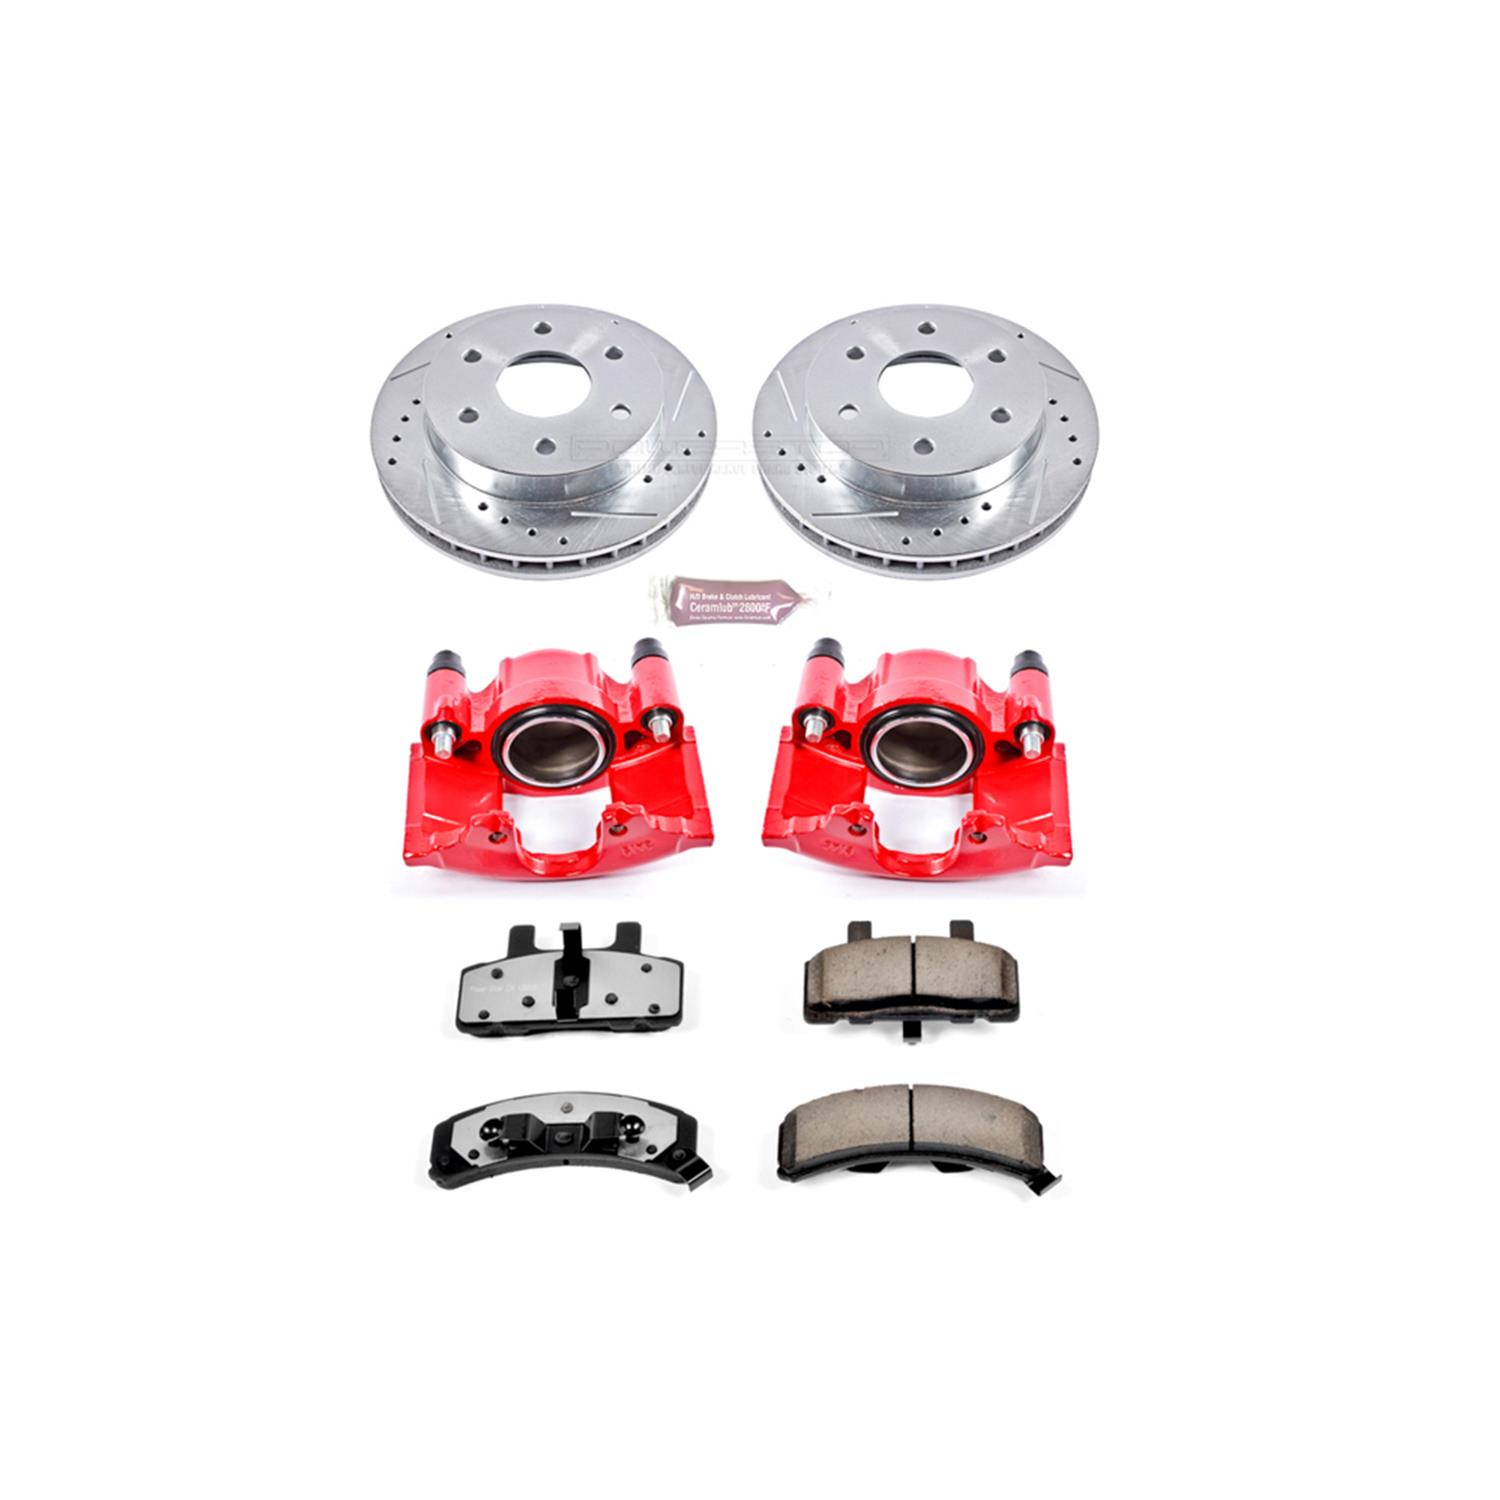 hight resolution of power stop z36 truck and tow performance brake kits with calipers kc1970 36 free shipping on orders over 99 at summit racing